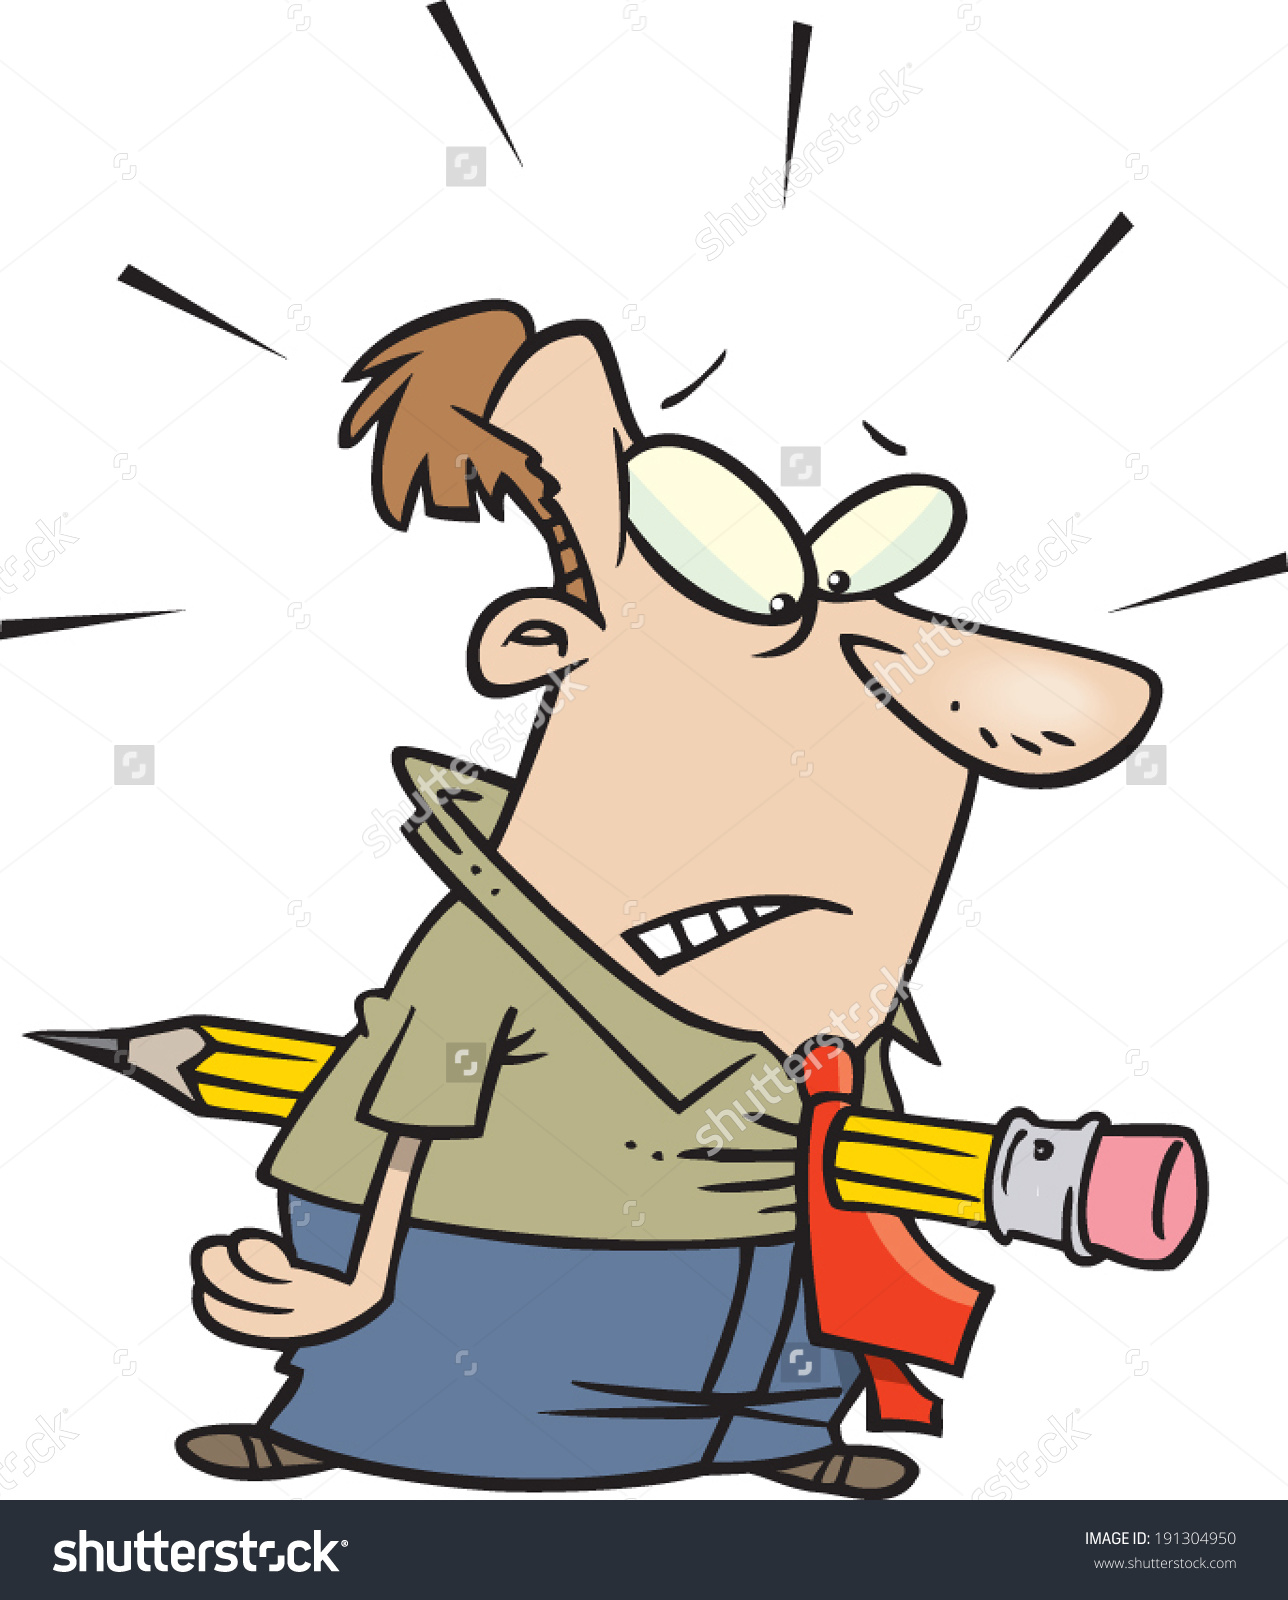 Cartoon Man Impaled By Pencil Stock Vector 191304950.